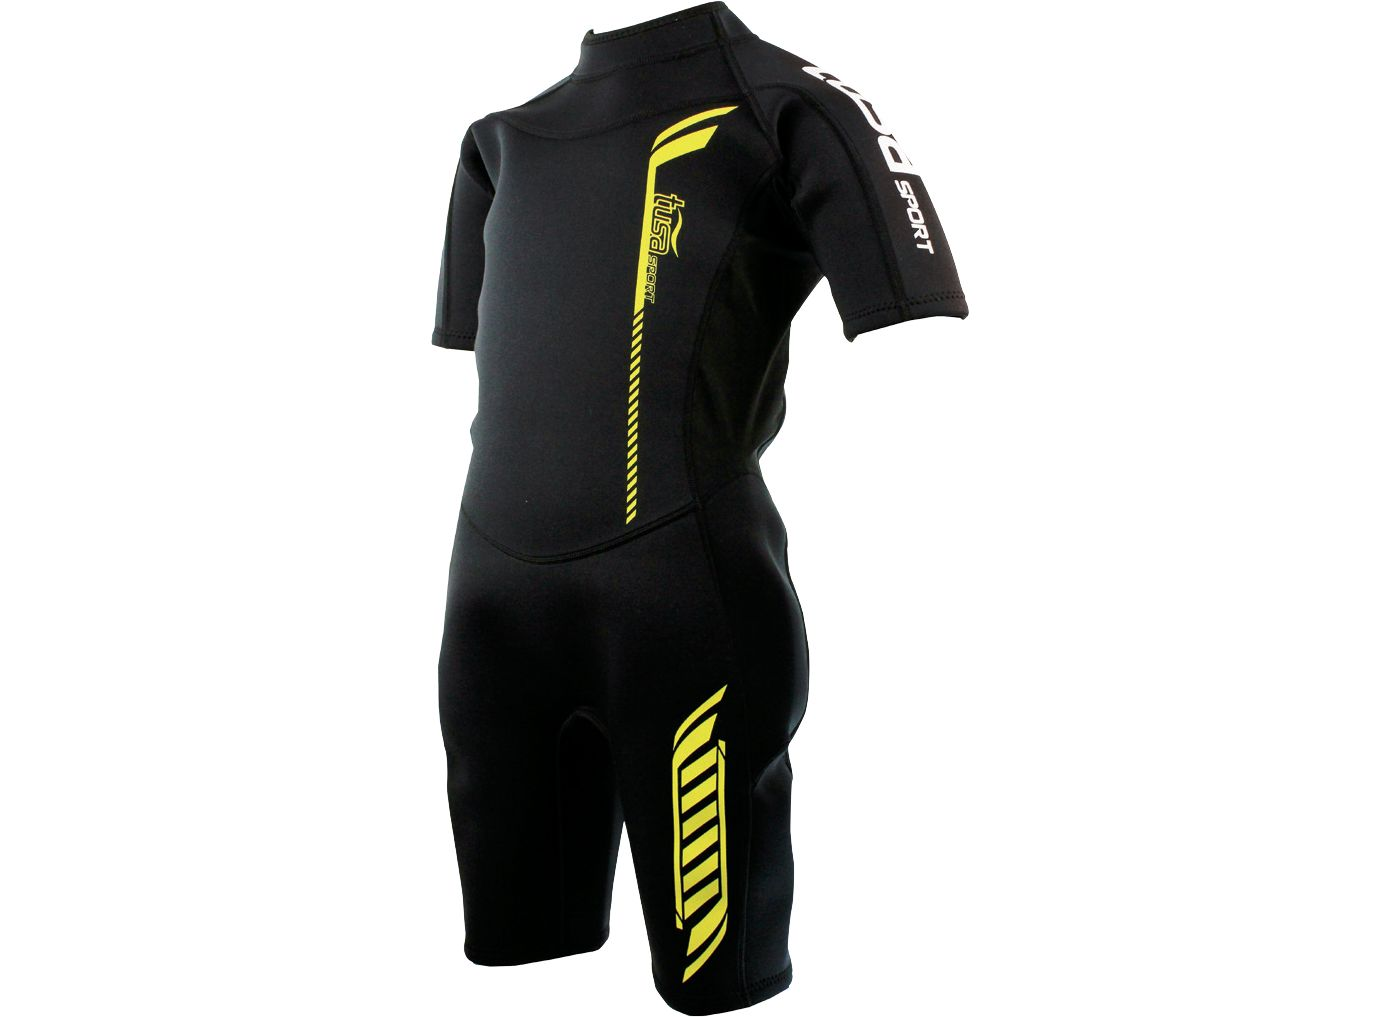 TUSA Sport Youth 2mm Shorty Wetsuit